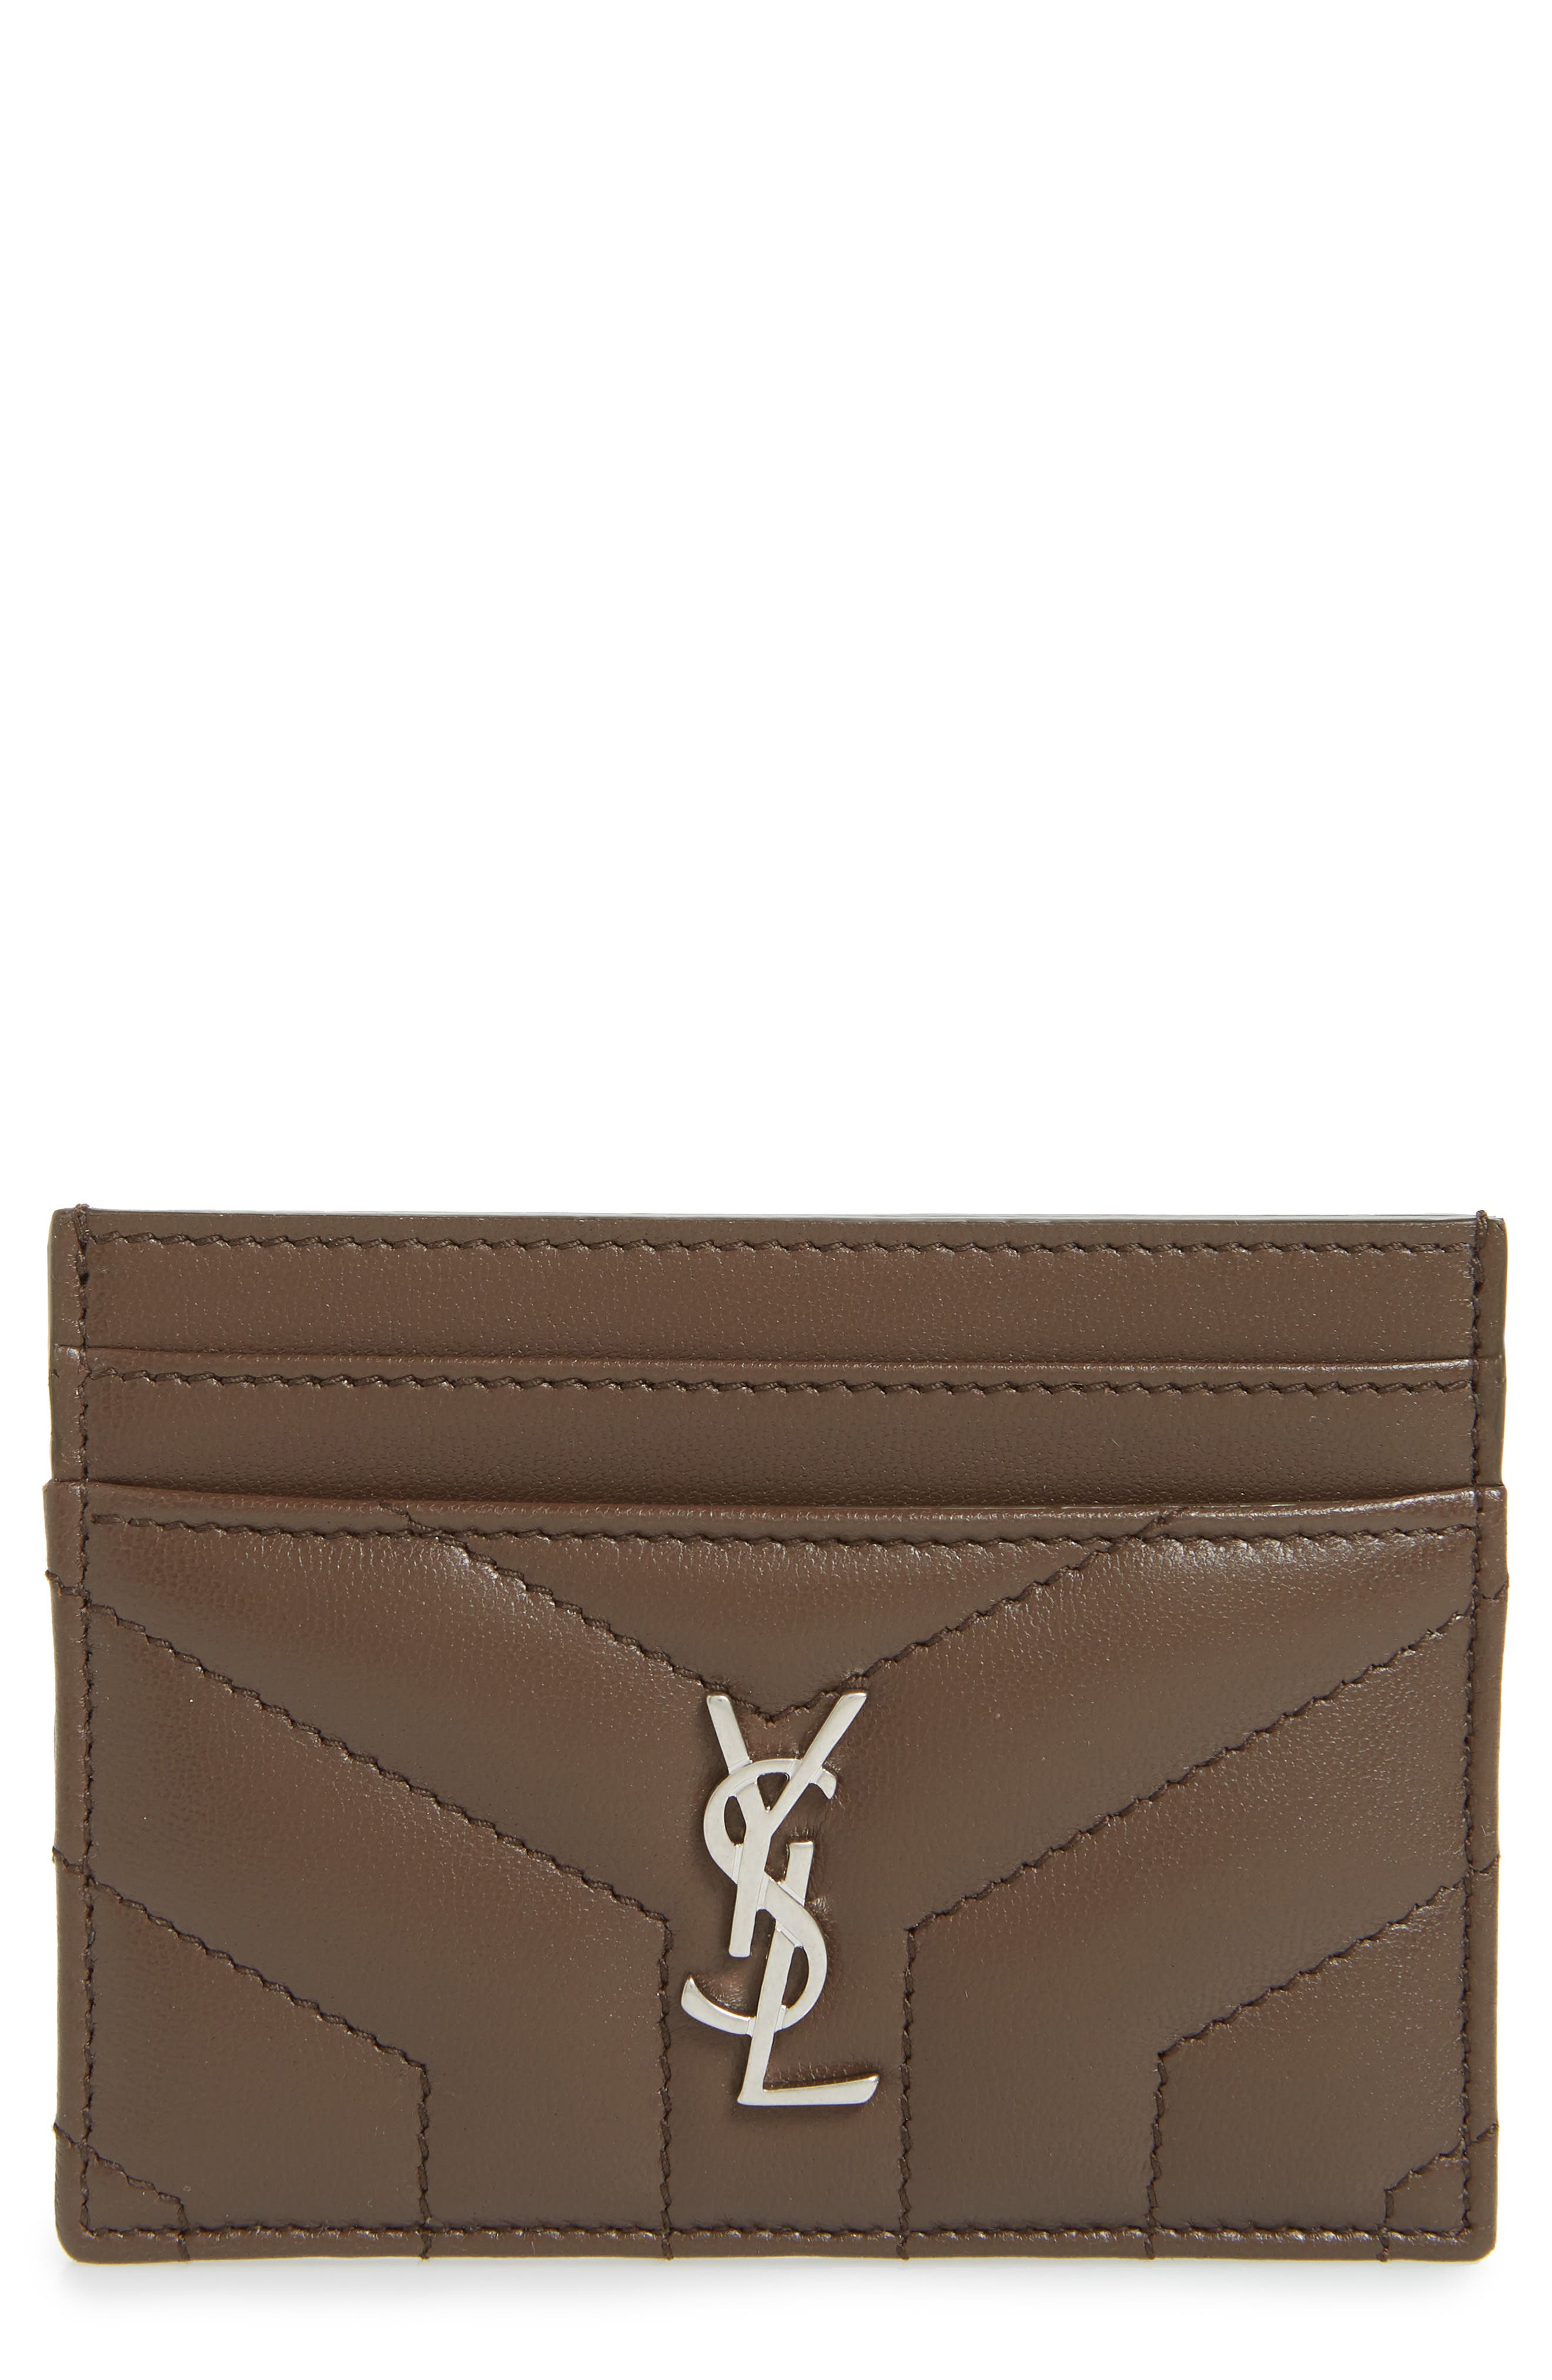 SAINT LAURENT, Loulou Monogram Quilted Leather Credit Card Case, Main thumbnail 1, color, FAGGIO